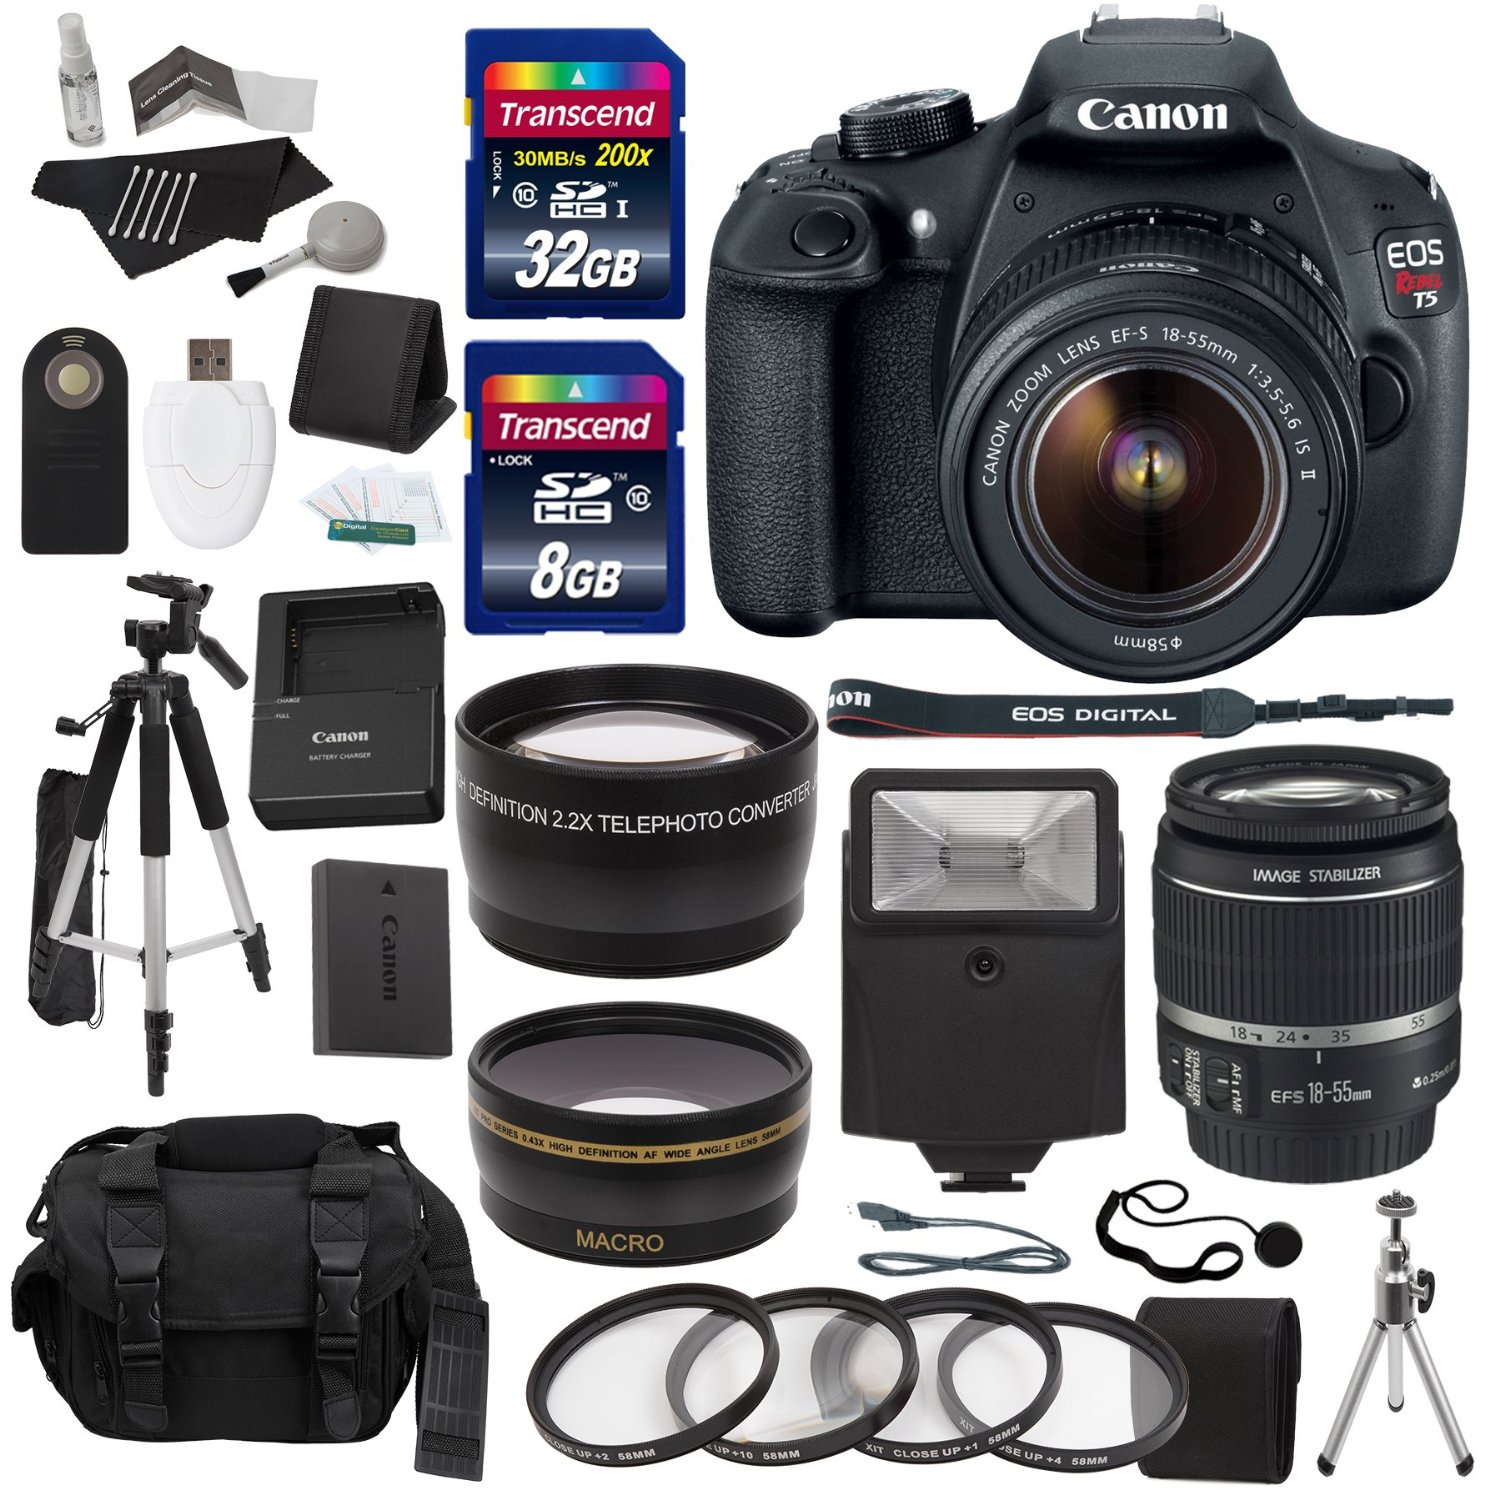 Canon EOS Rebel T5 Digital SLR Camera Body With EF-S 18-55mm